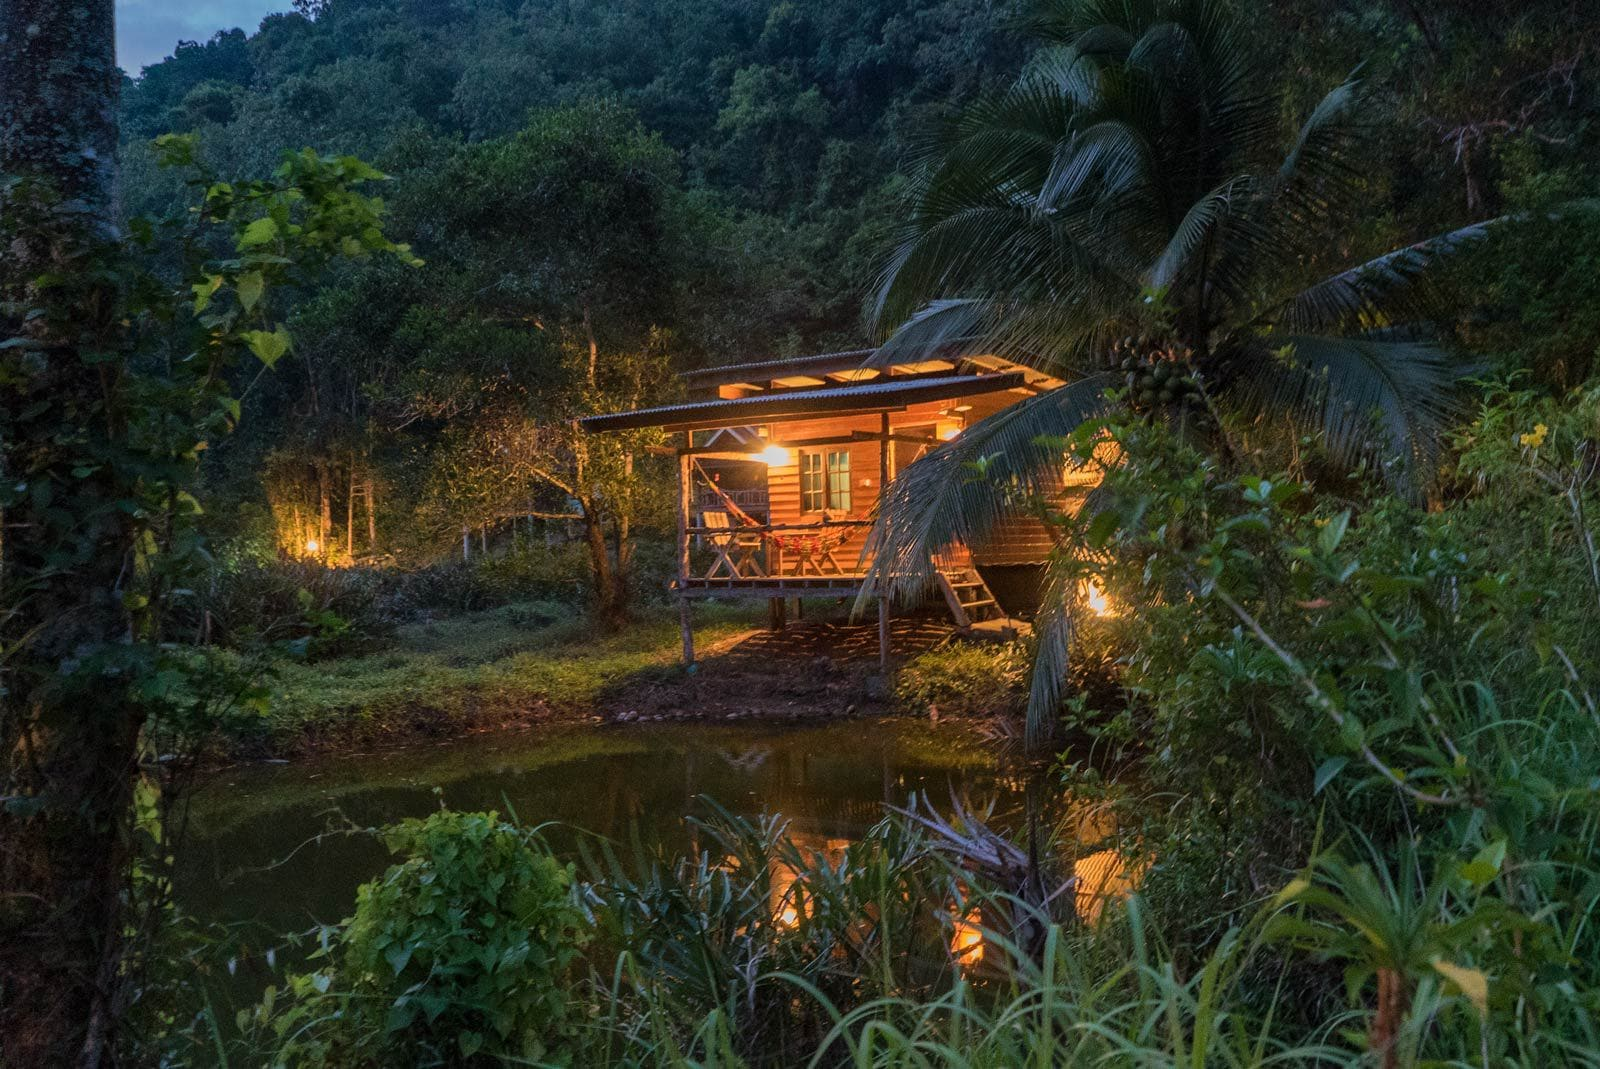 Our hut in Ko Yao Noi